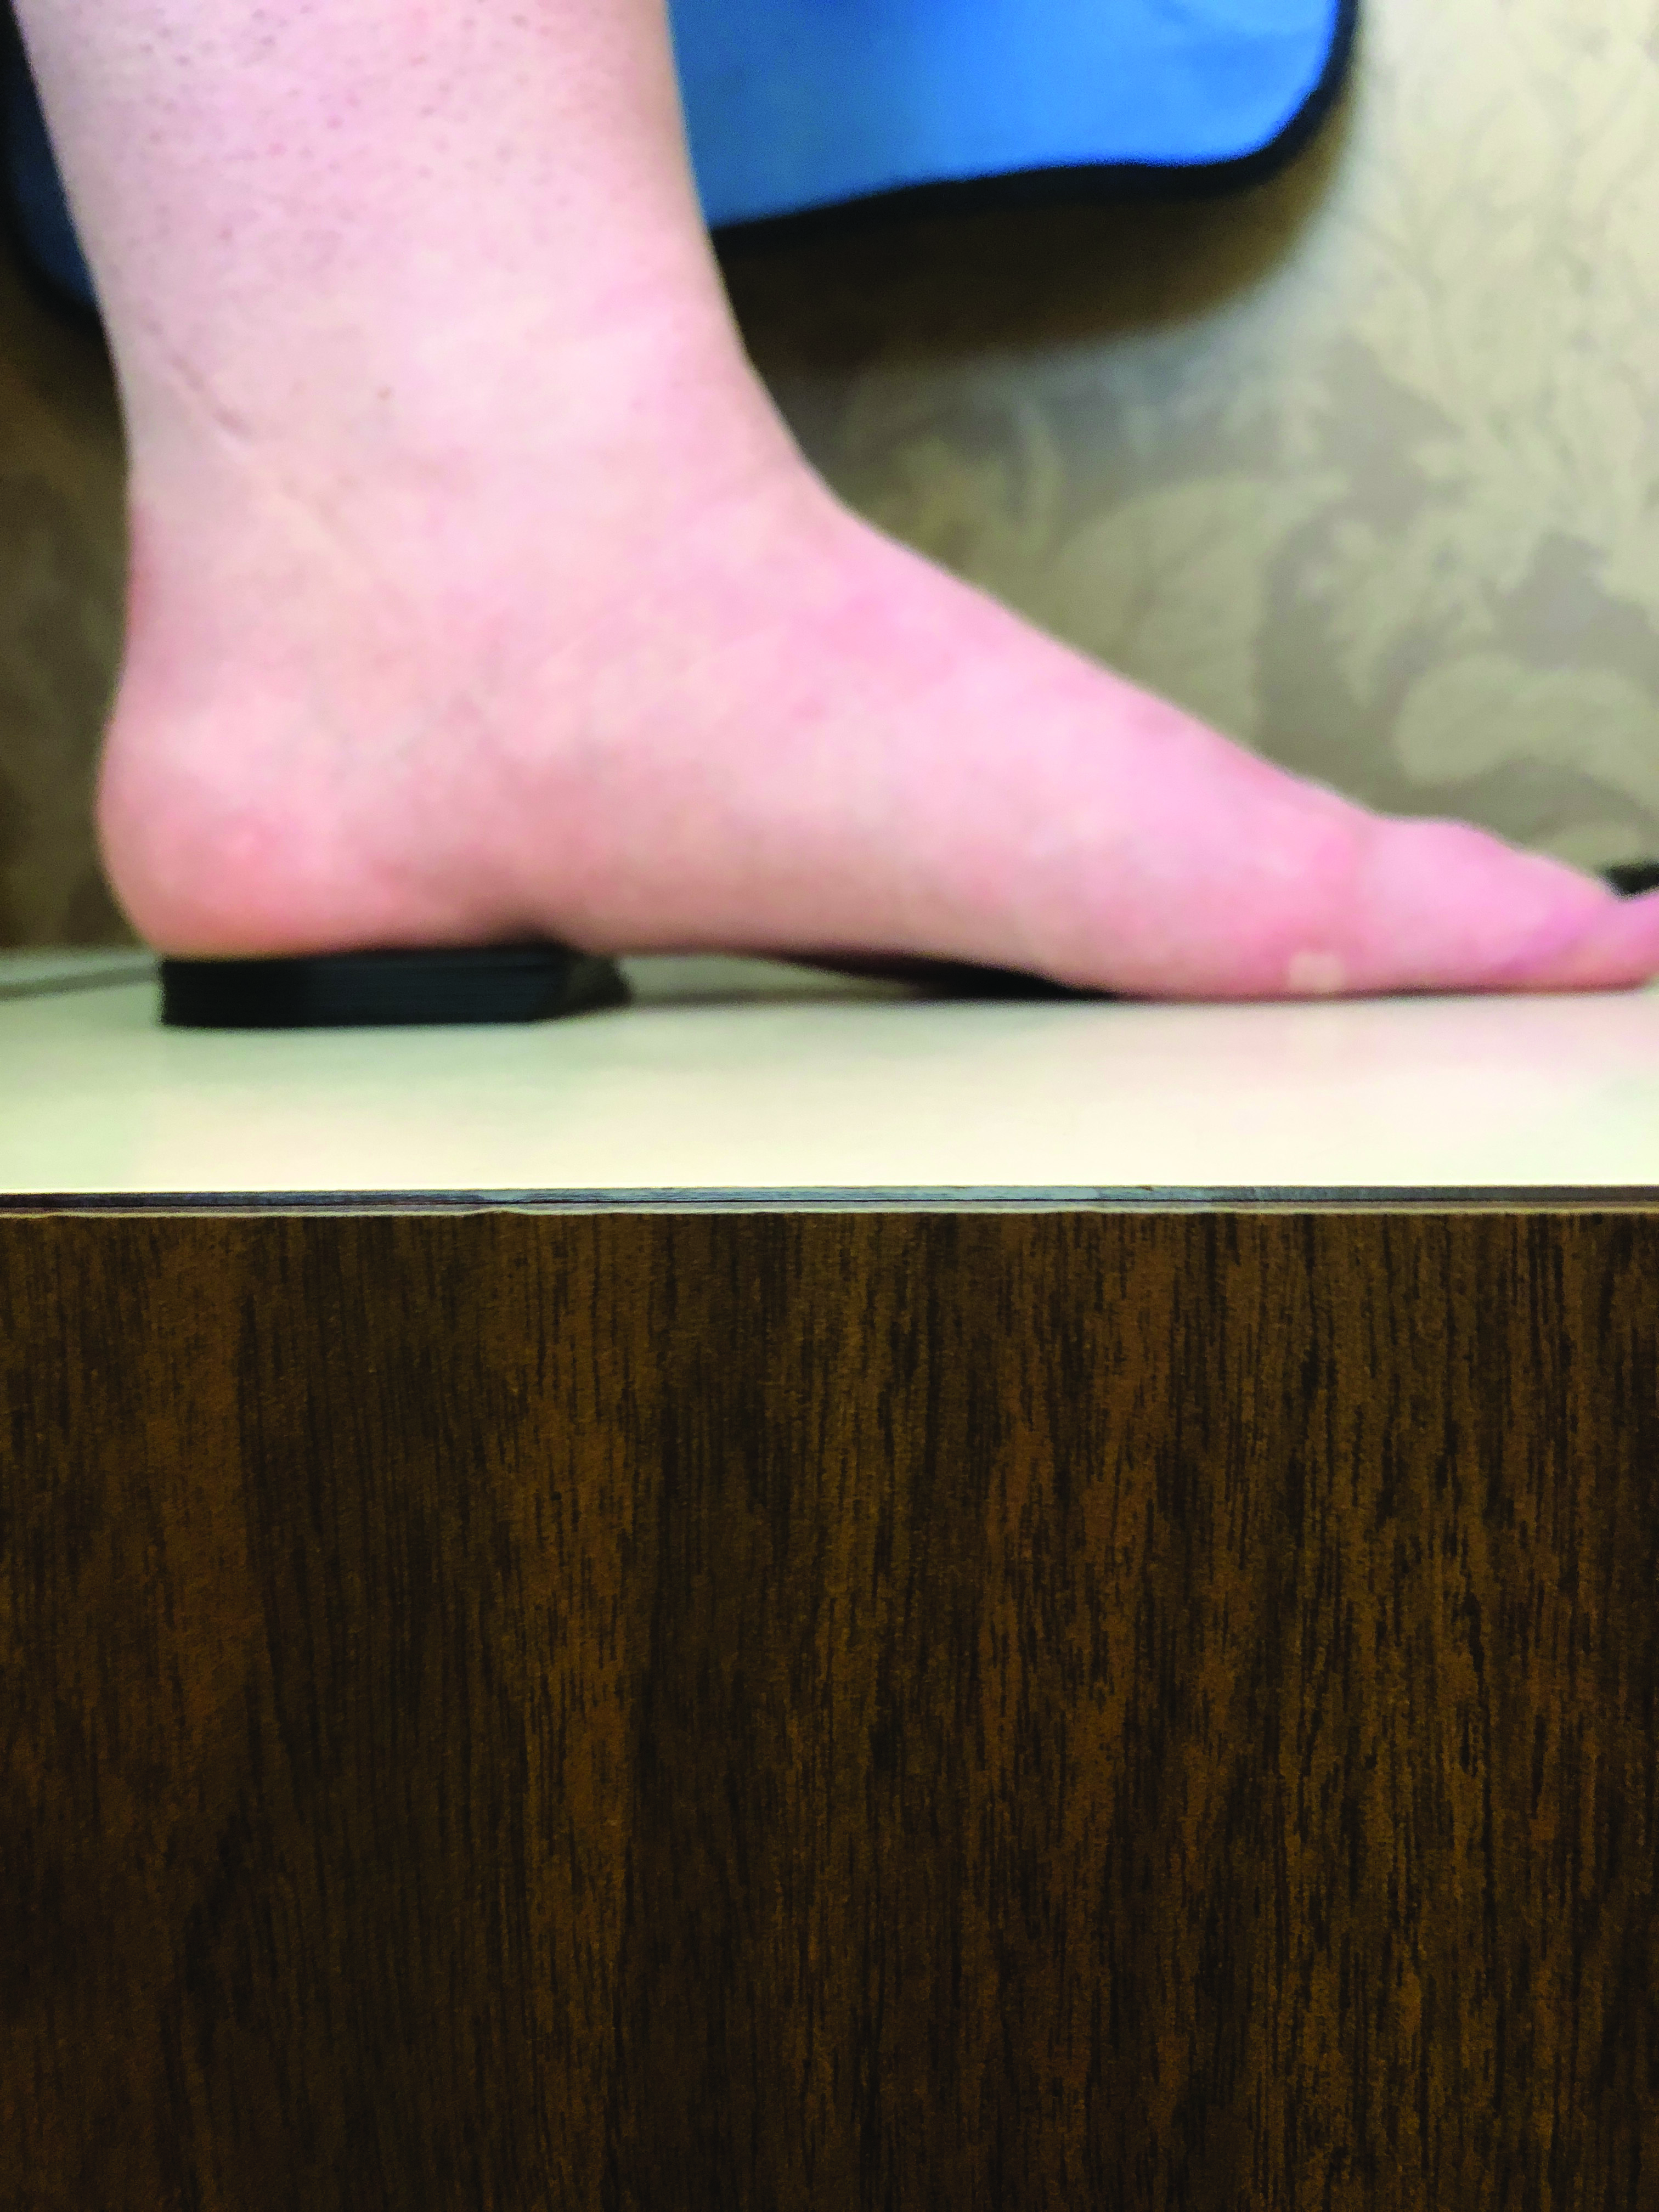 Heel Elevation In The Shoe: What The